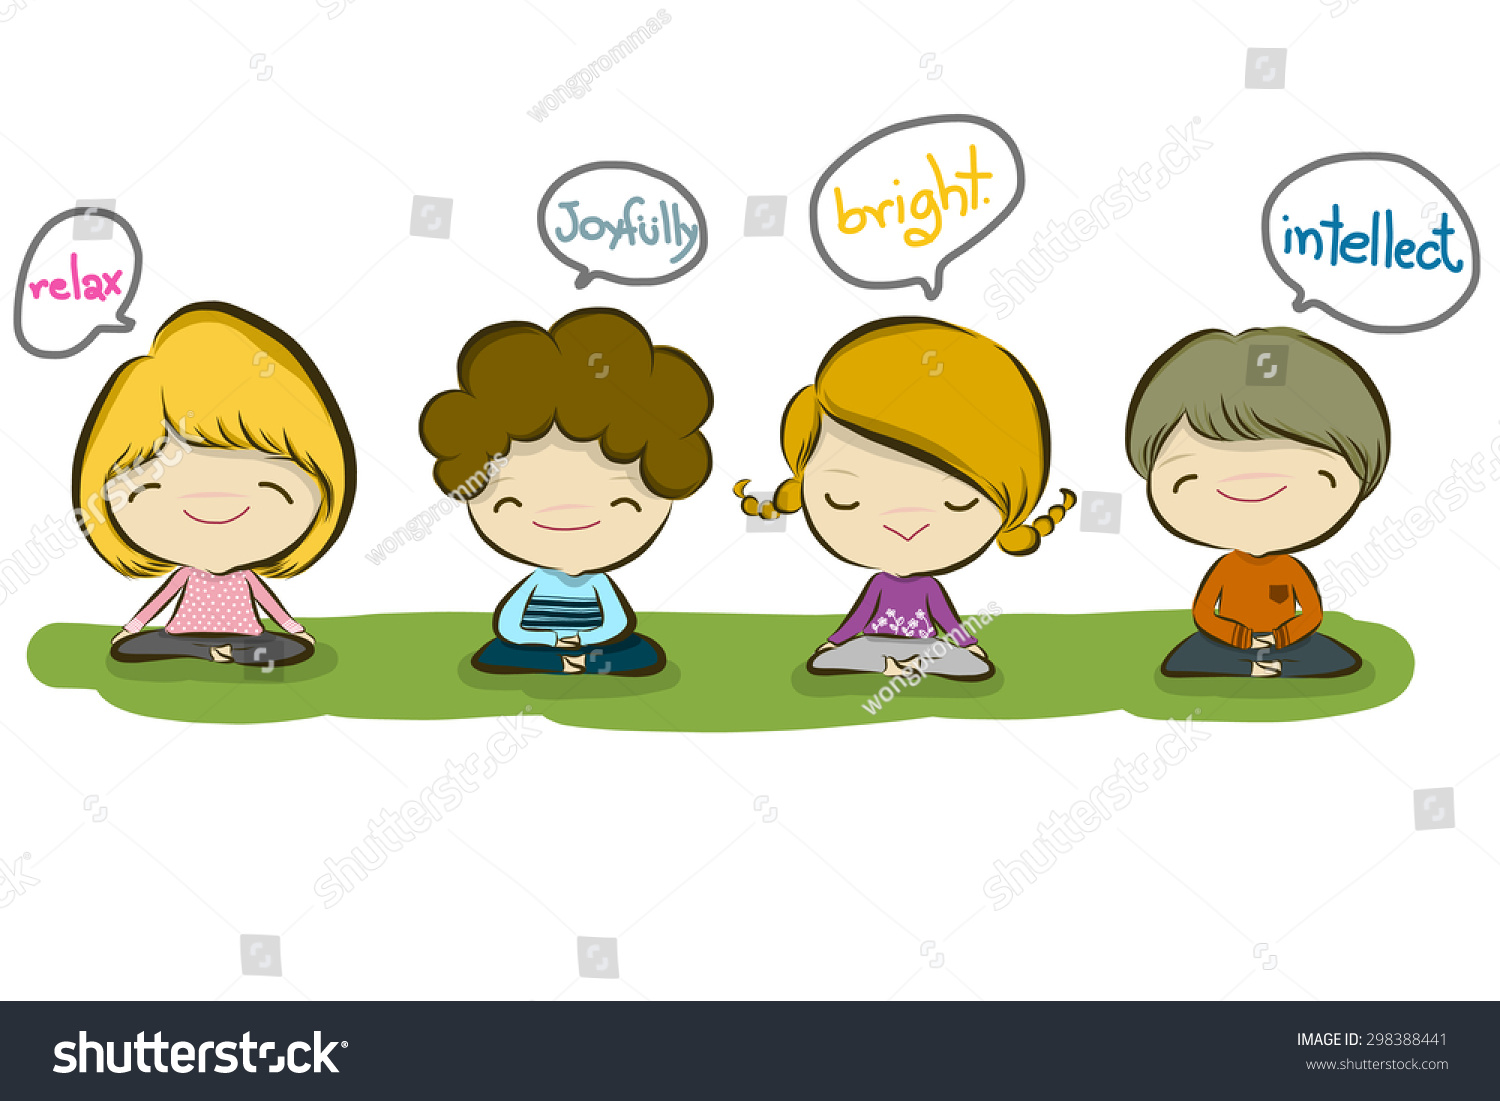 vector illustration of cute meditation kid cartoon drawing style